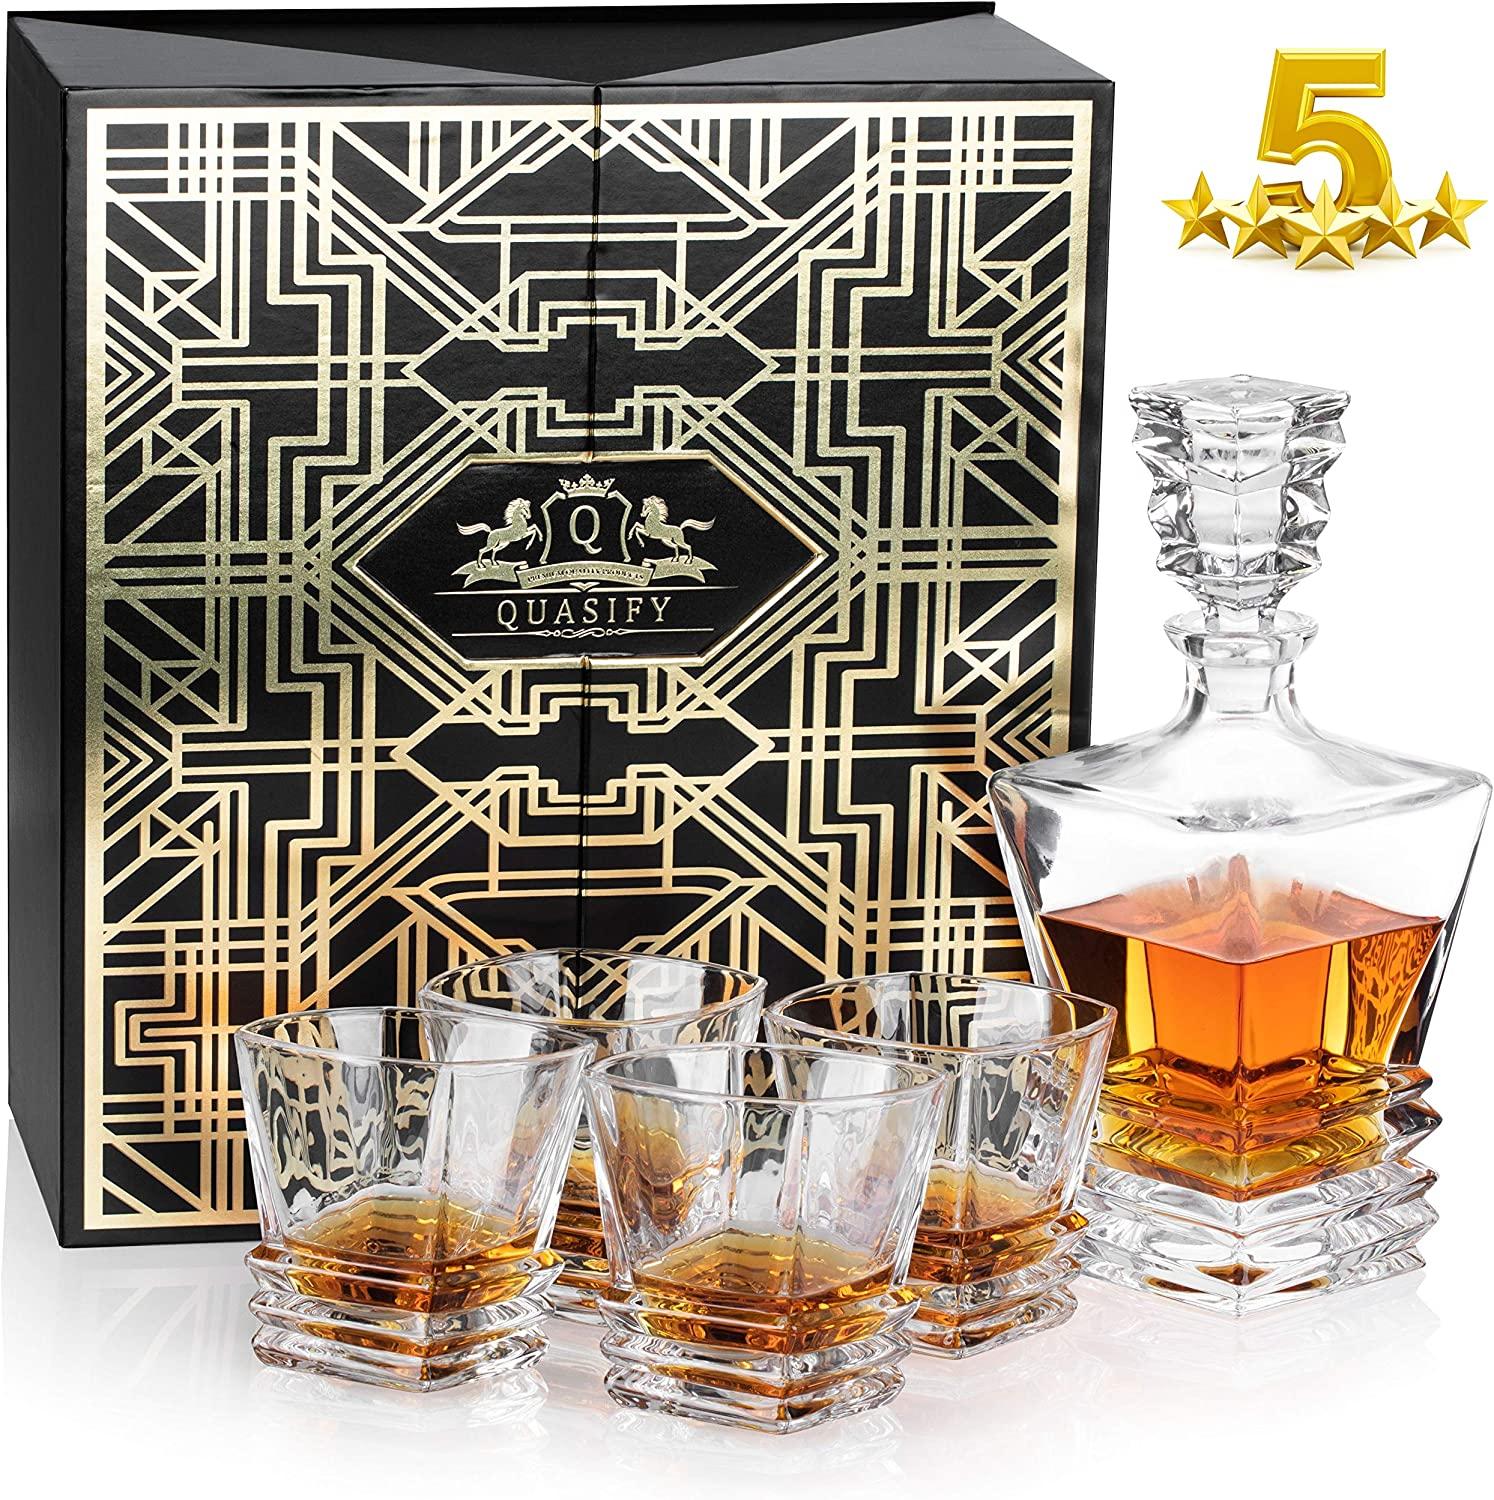 Quasify 5 Pieces Set In Luxury Gift Box - 1 Decanter And 4 Whiskey Glasses + A Whiskey Recipe And Secrets Book